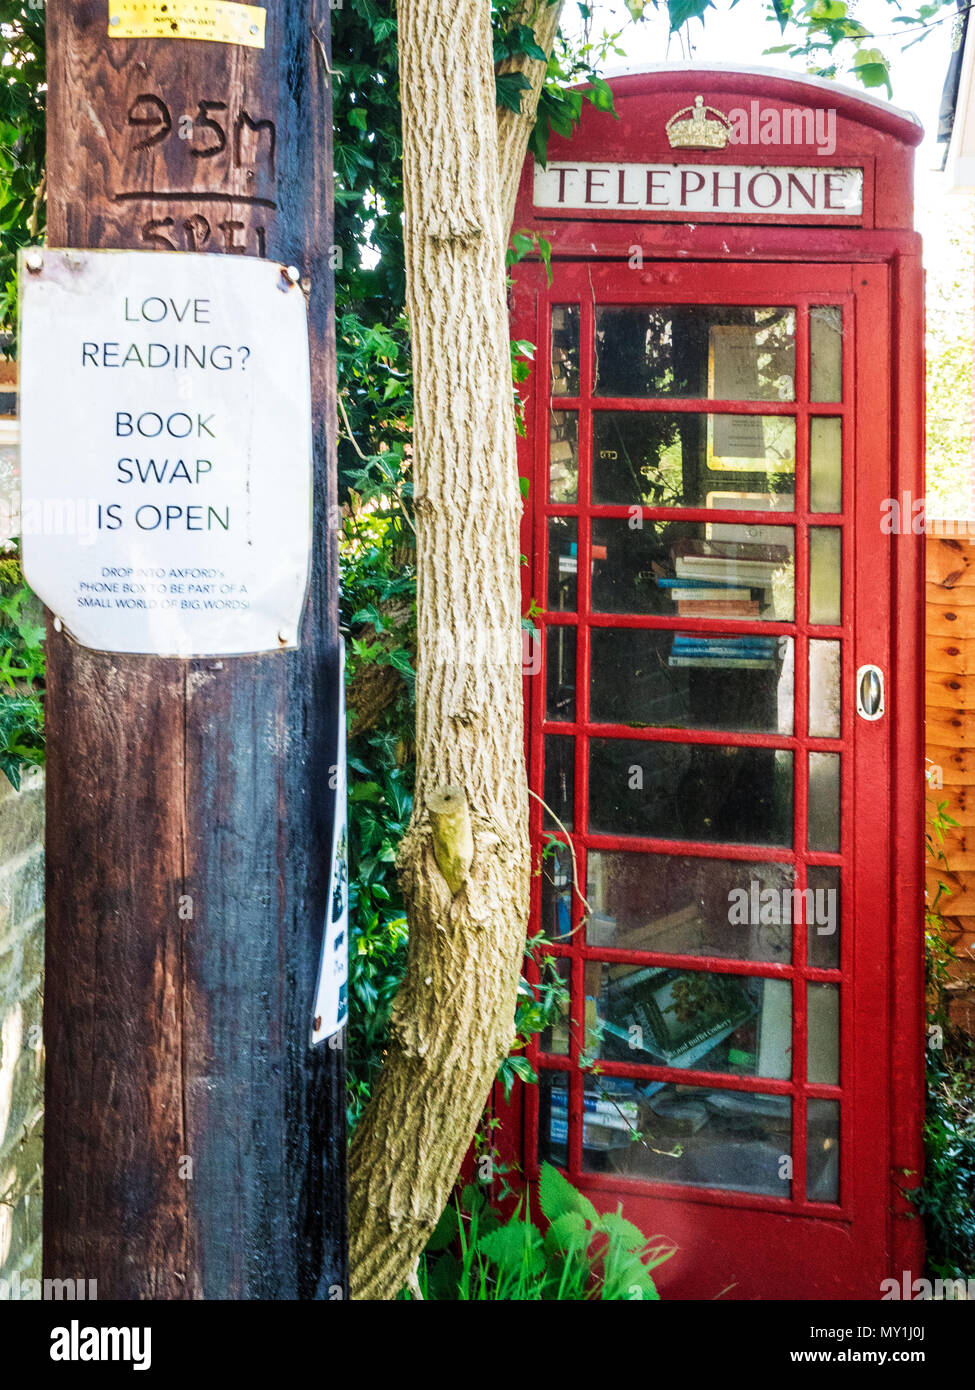 An old red telephone box used as a book swap location in a Wiltshire village. - Stock Image